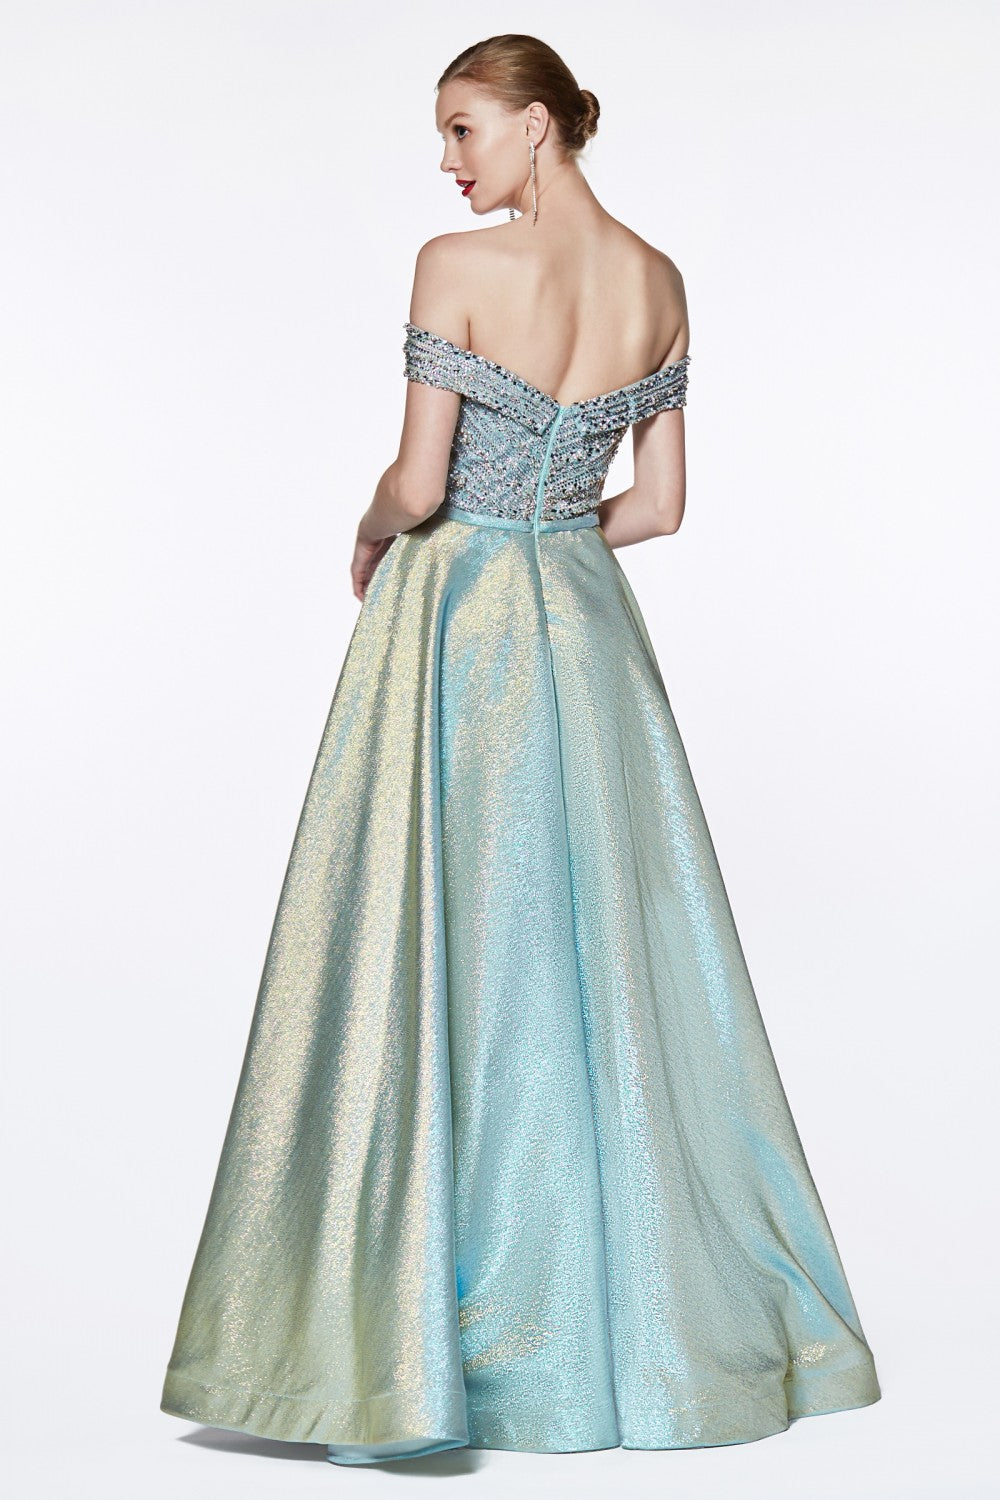 Off The Shoulder Ball Gown With Beaded Sweetheart Bodice And Metallic Slitted Skirt